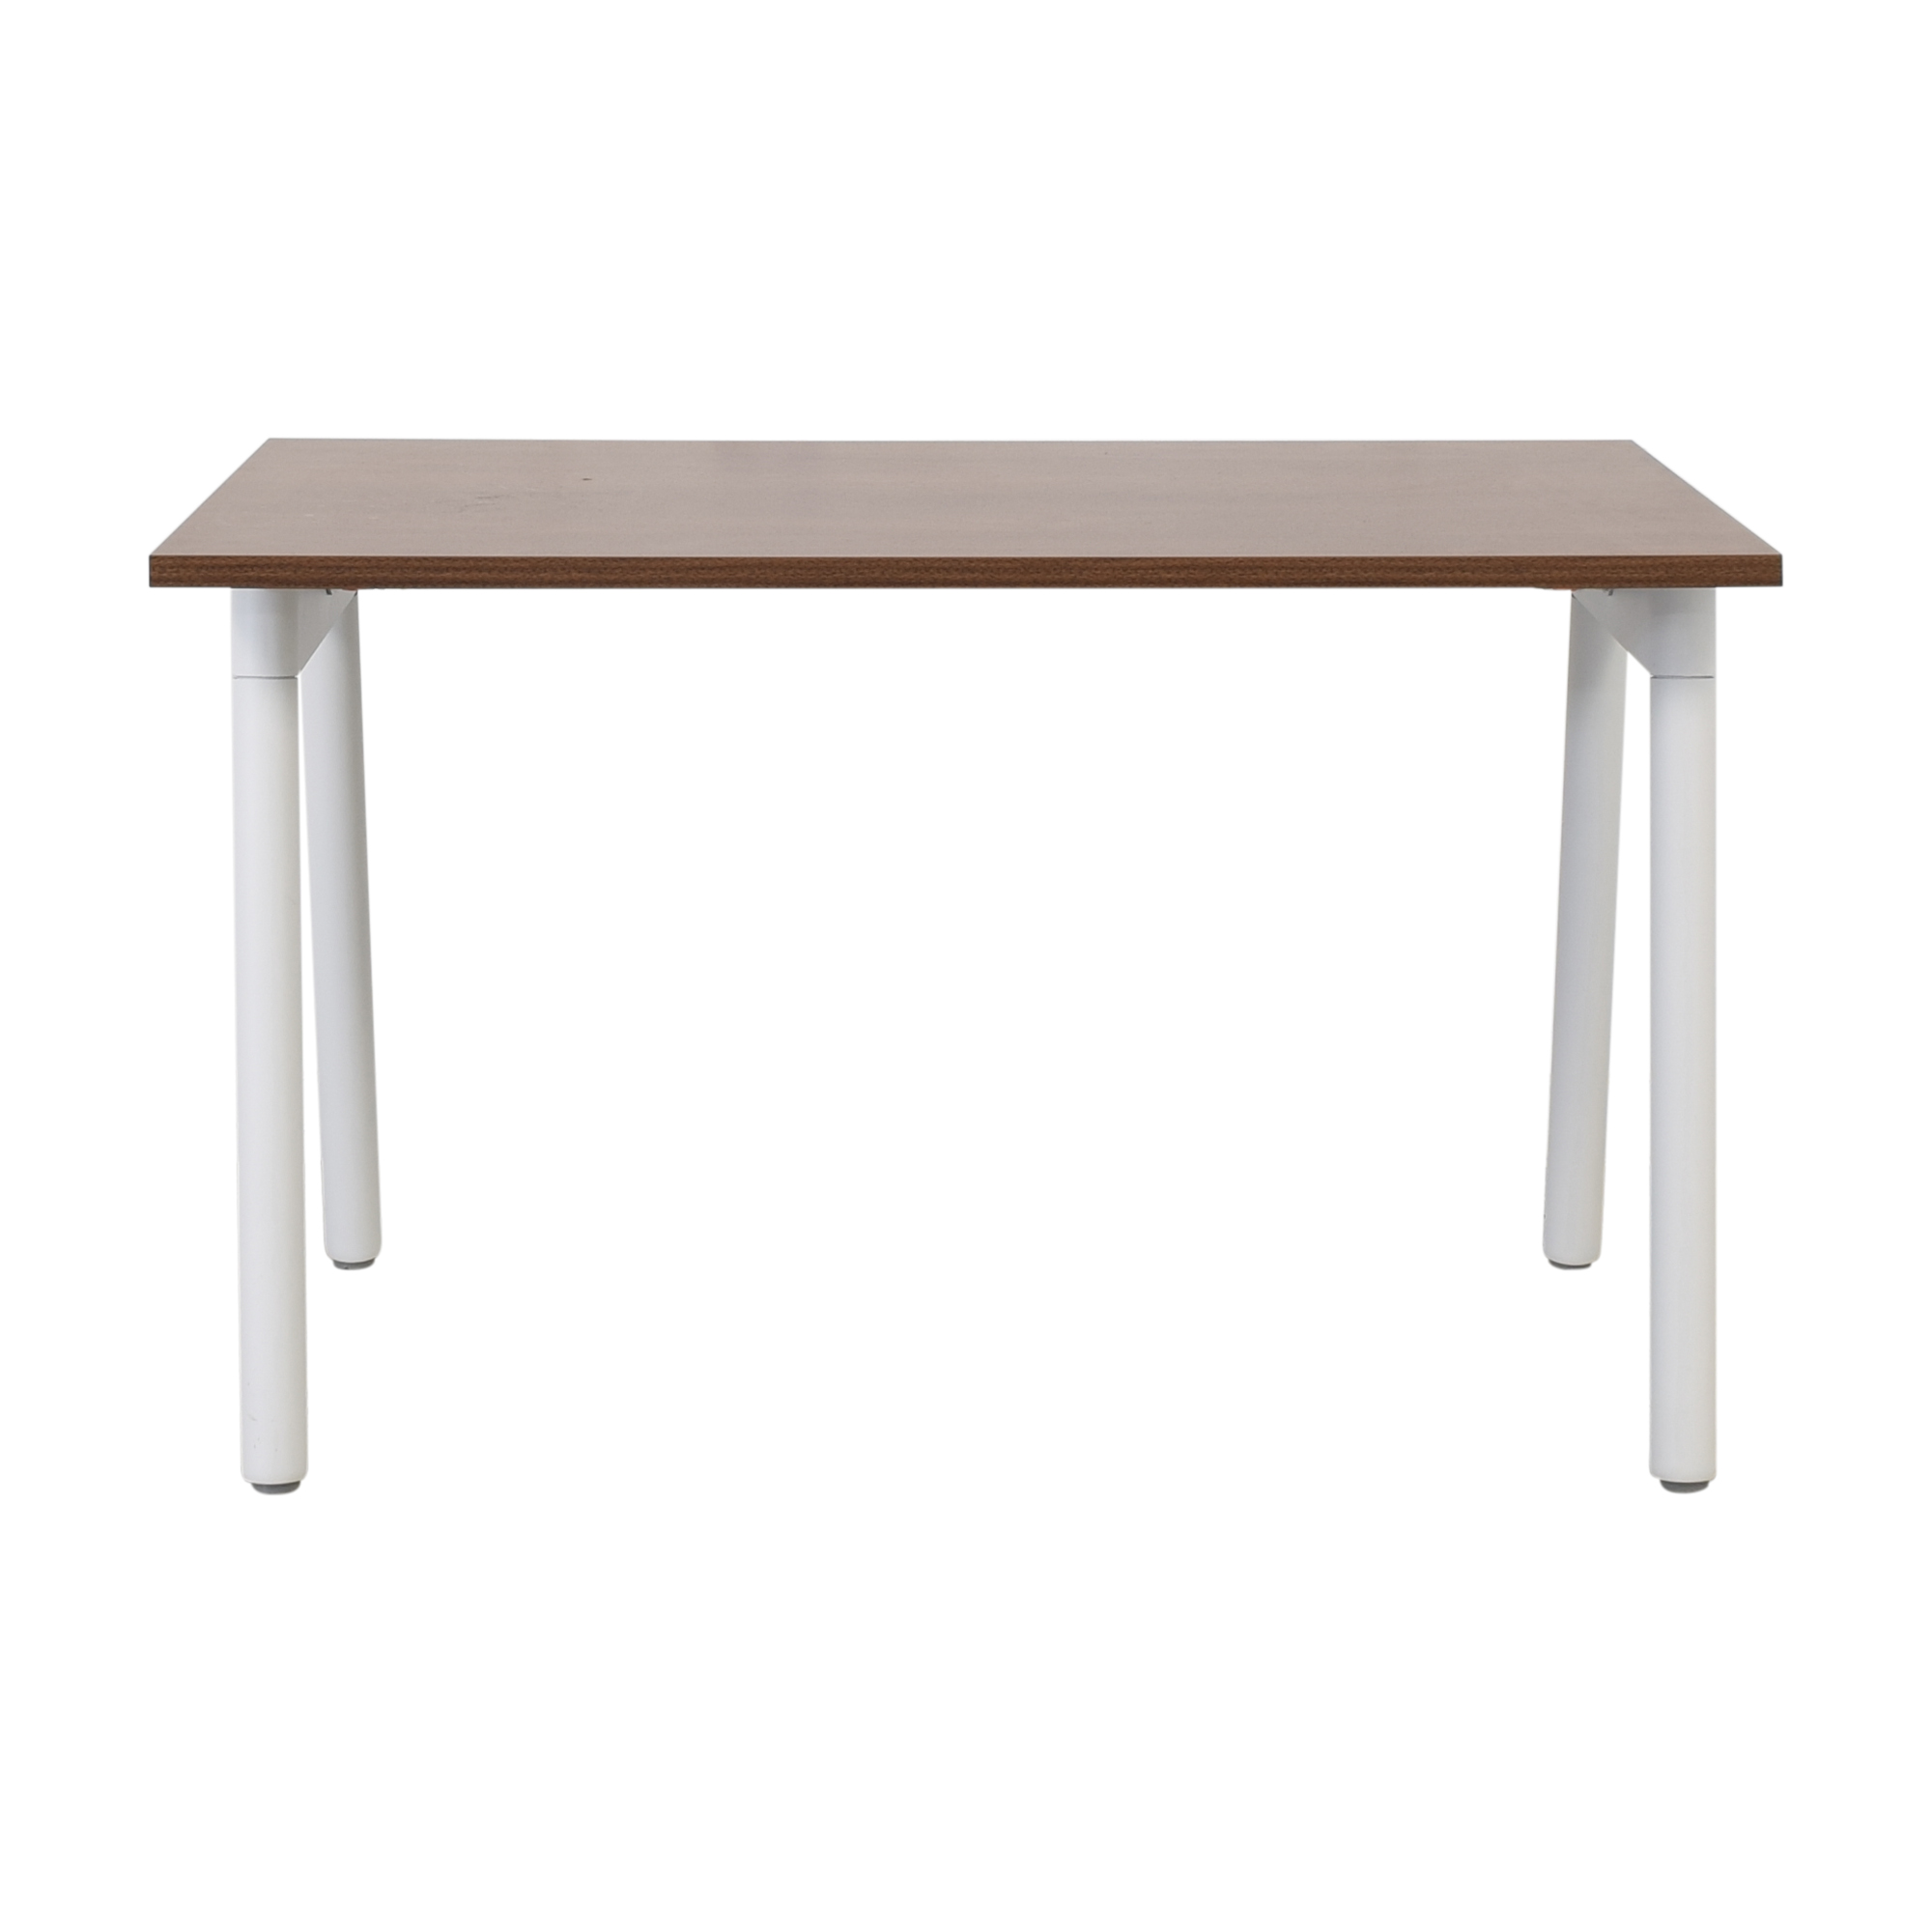 Poppin Series A Single Desk for One sale